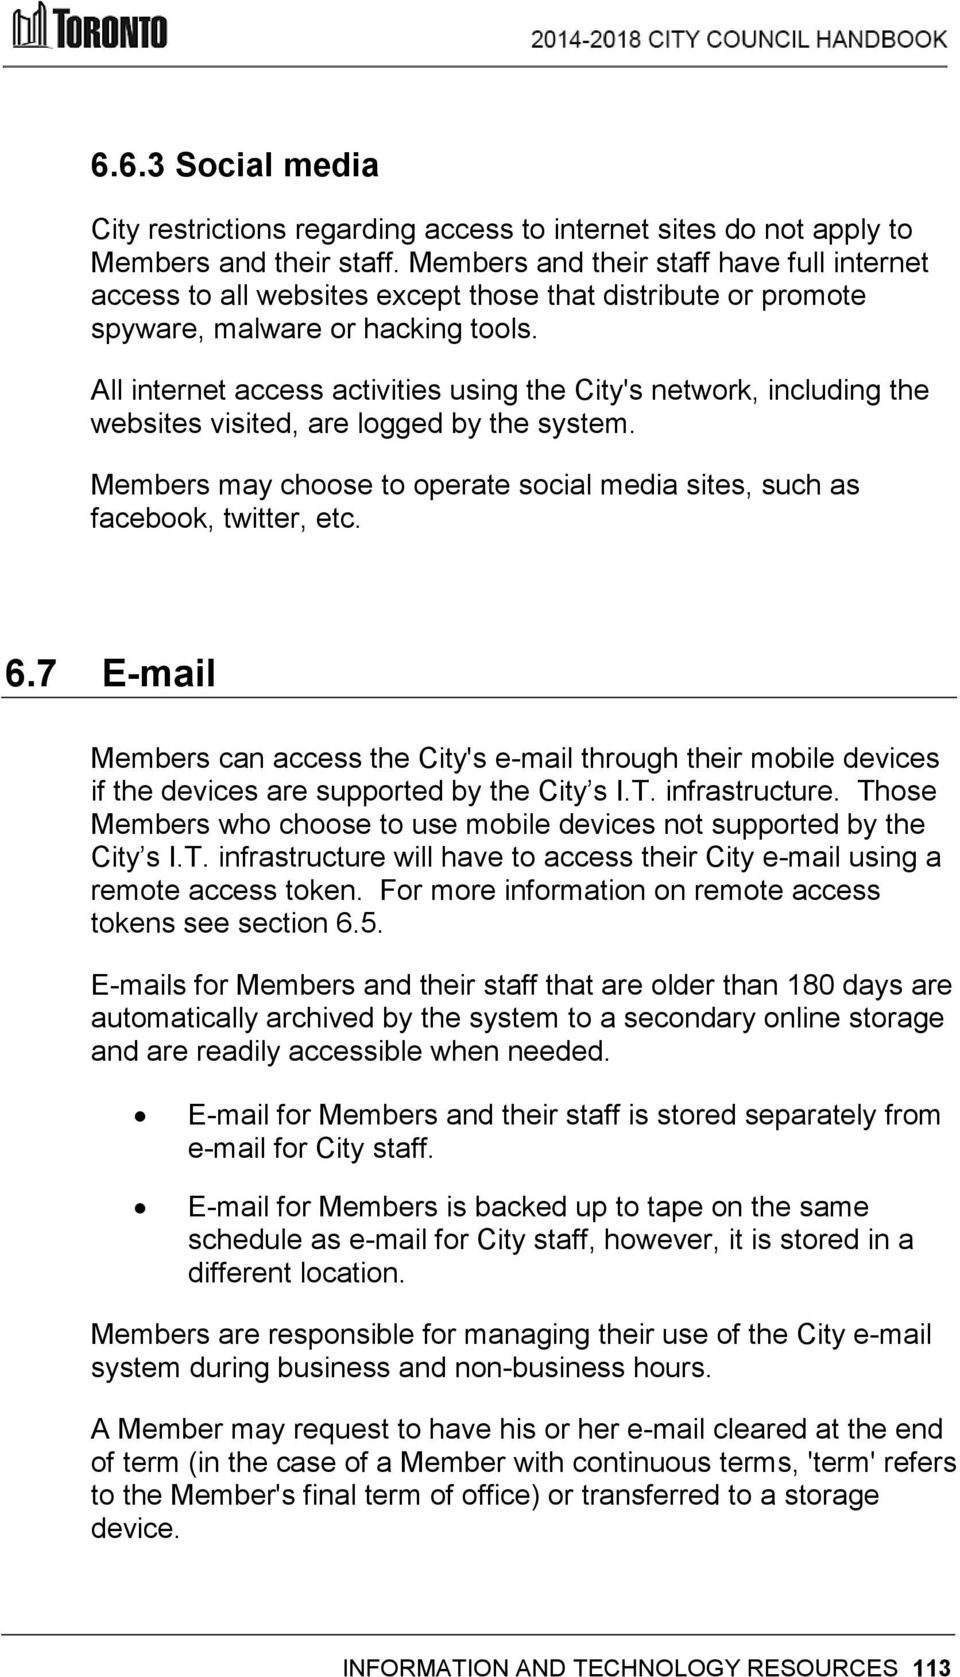 All internet access activities using the City's network, including the websites visited, are logged by the system. Members may choose to operate social media sites, such as facebook, twitter, etc. 6.